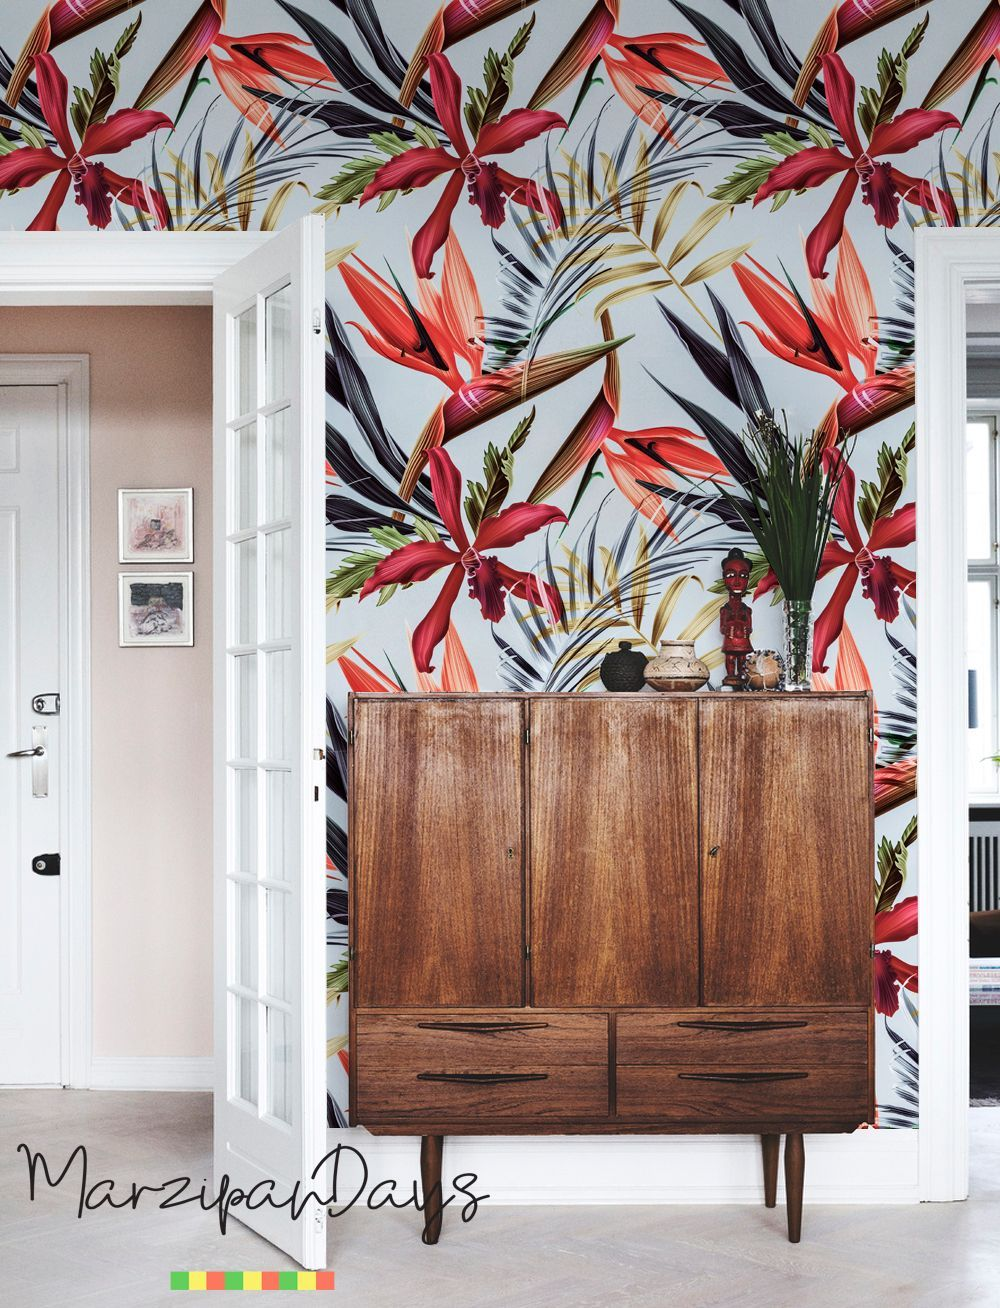 Plants and leaves, removable wallpaper - repositionable, reusable, self-adhesive, wall mural, peel and stick, delicate art wall, #139 #happyfallyallwallpaper Red is the one of most vivid colors of fall. Beautiful nature inspired tropical pattern Plants and Leaves removable wall mural #modernhomedecor #moderninterior #decorideas #Peelandstick #removable #fallcolors #red #redcolor #decorating #tropics #wallpaper #wallmural #walls #walldecor #inspirational #reddecor #autumn #autumncolors #homeideas